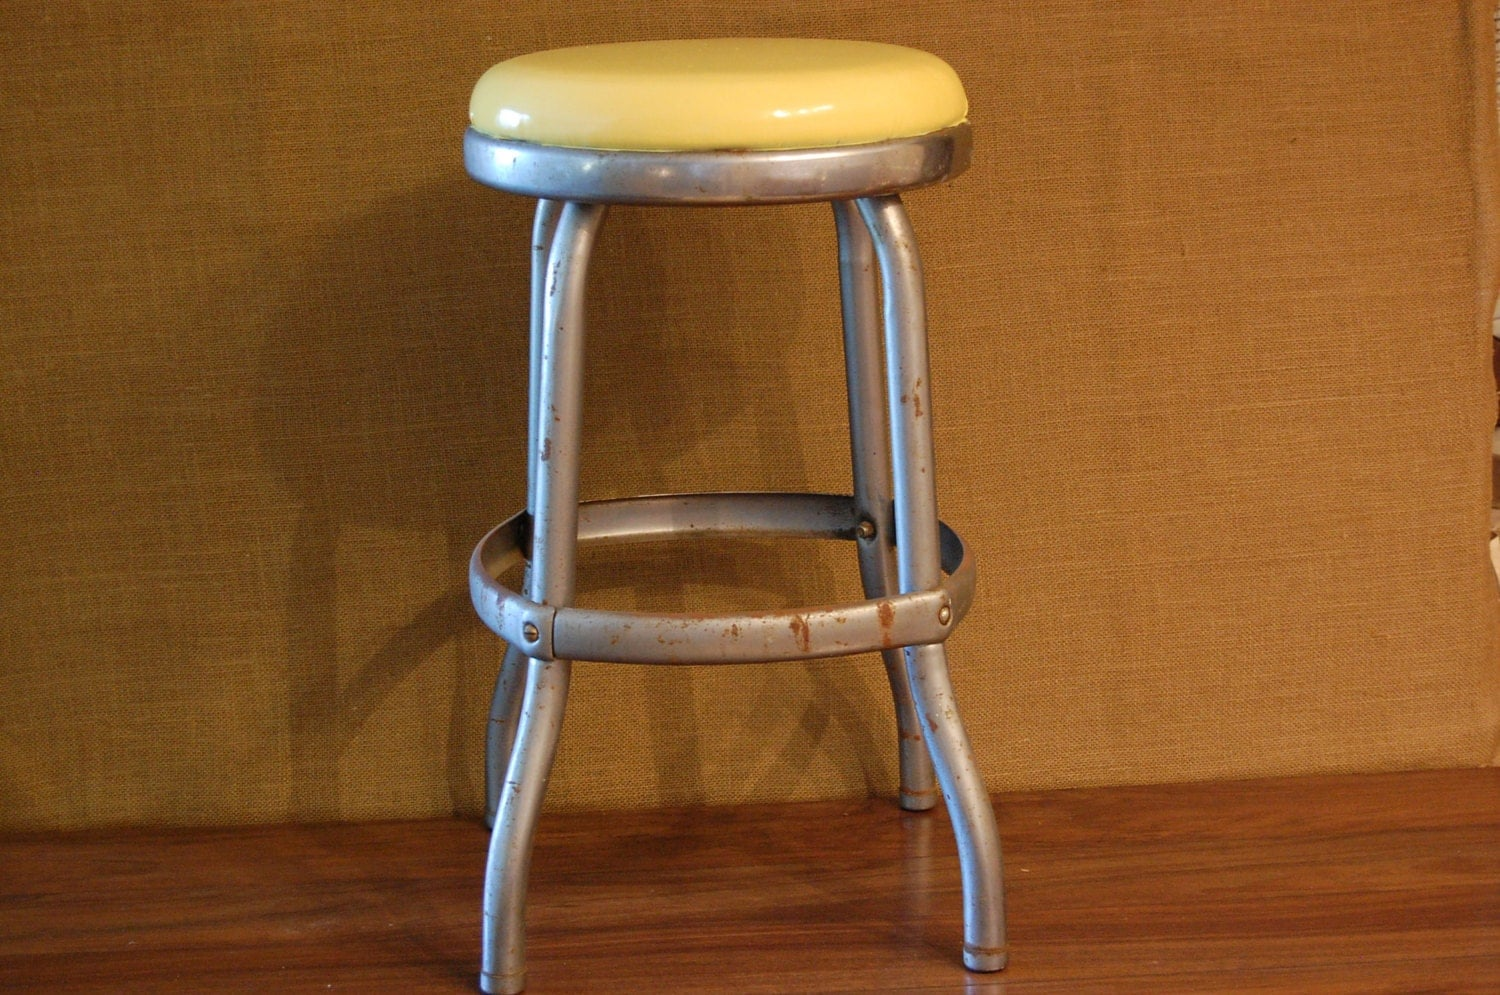 Vintage Yellow Cosco Stool kitchen stool vintage farmhouse